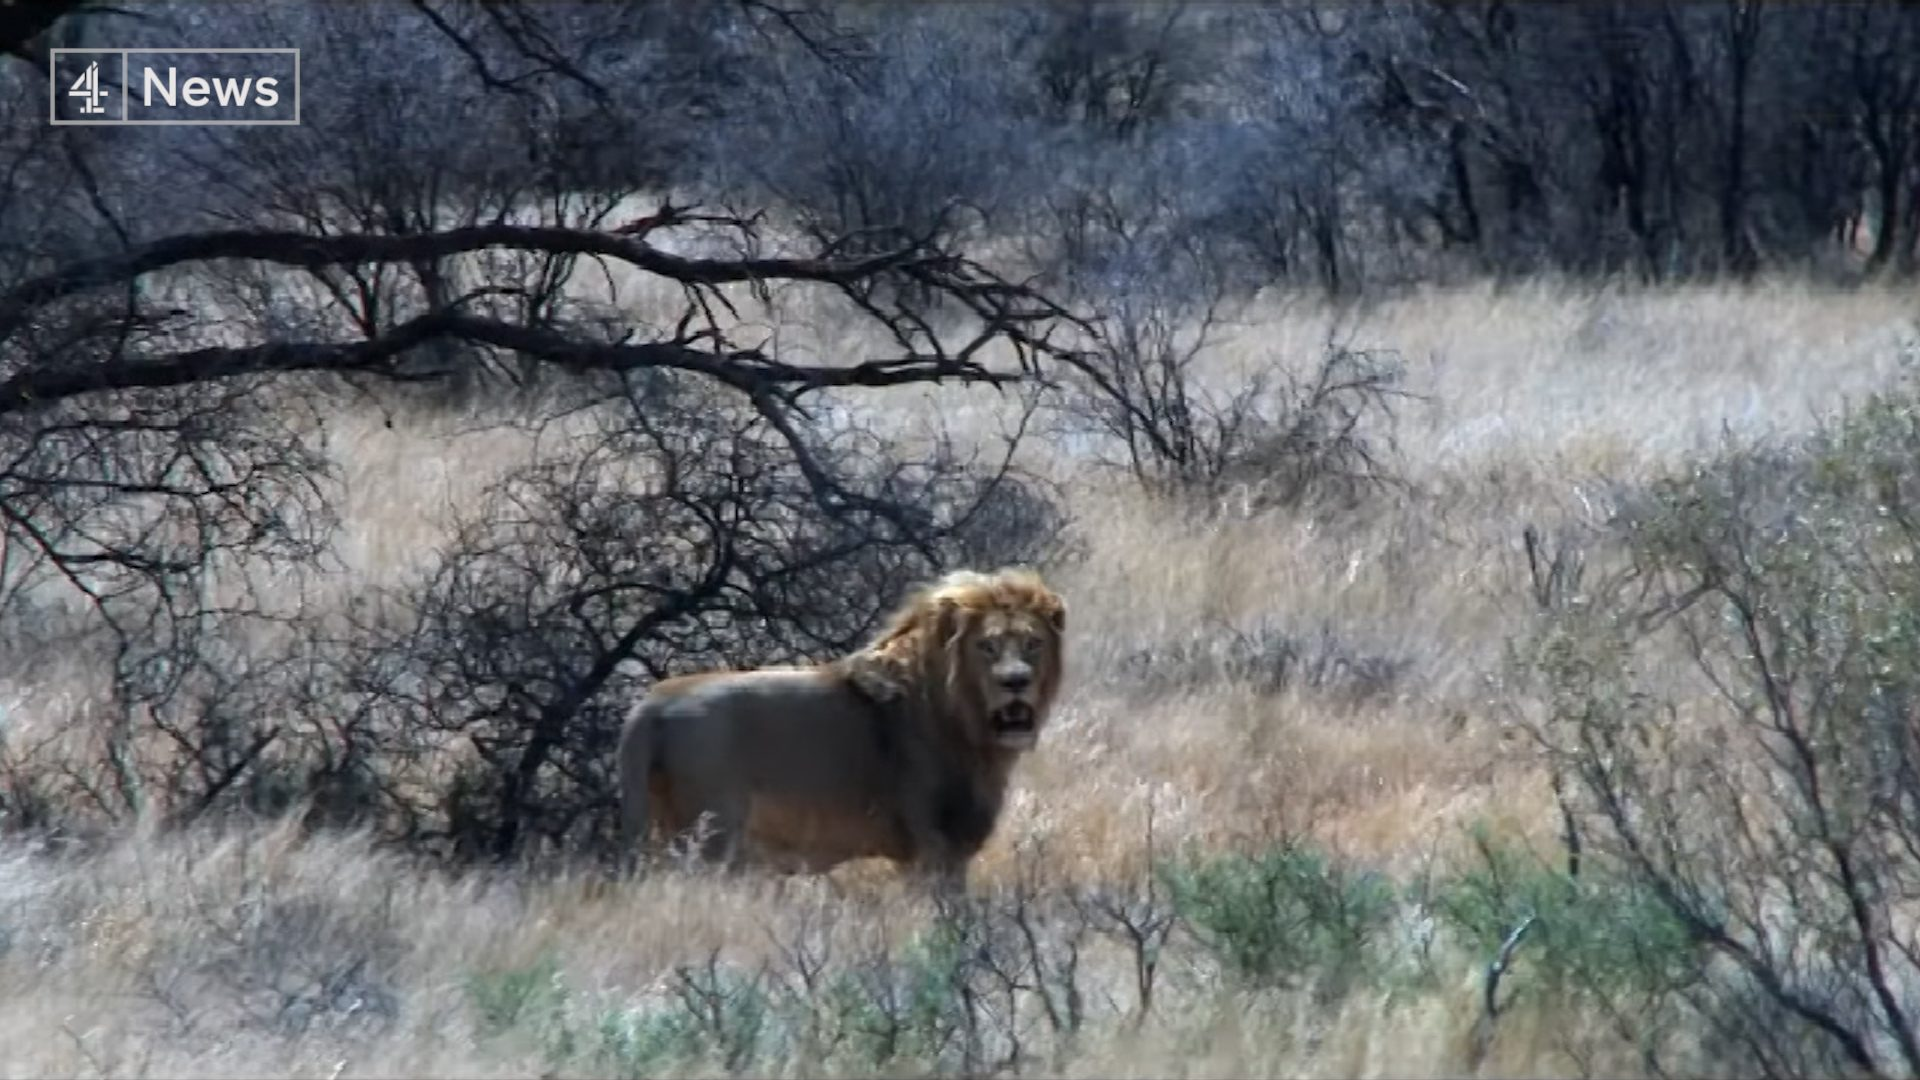 Five years after Cecil the lion was shot dead, trophy hunting continues - channel 4